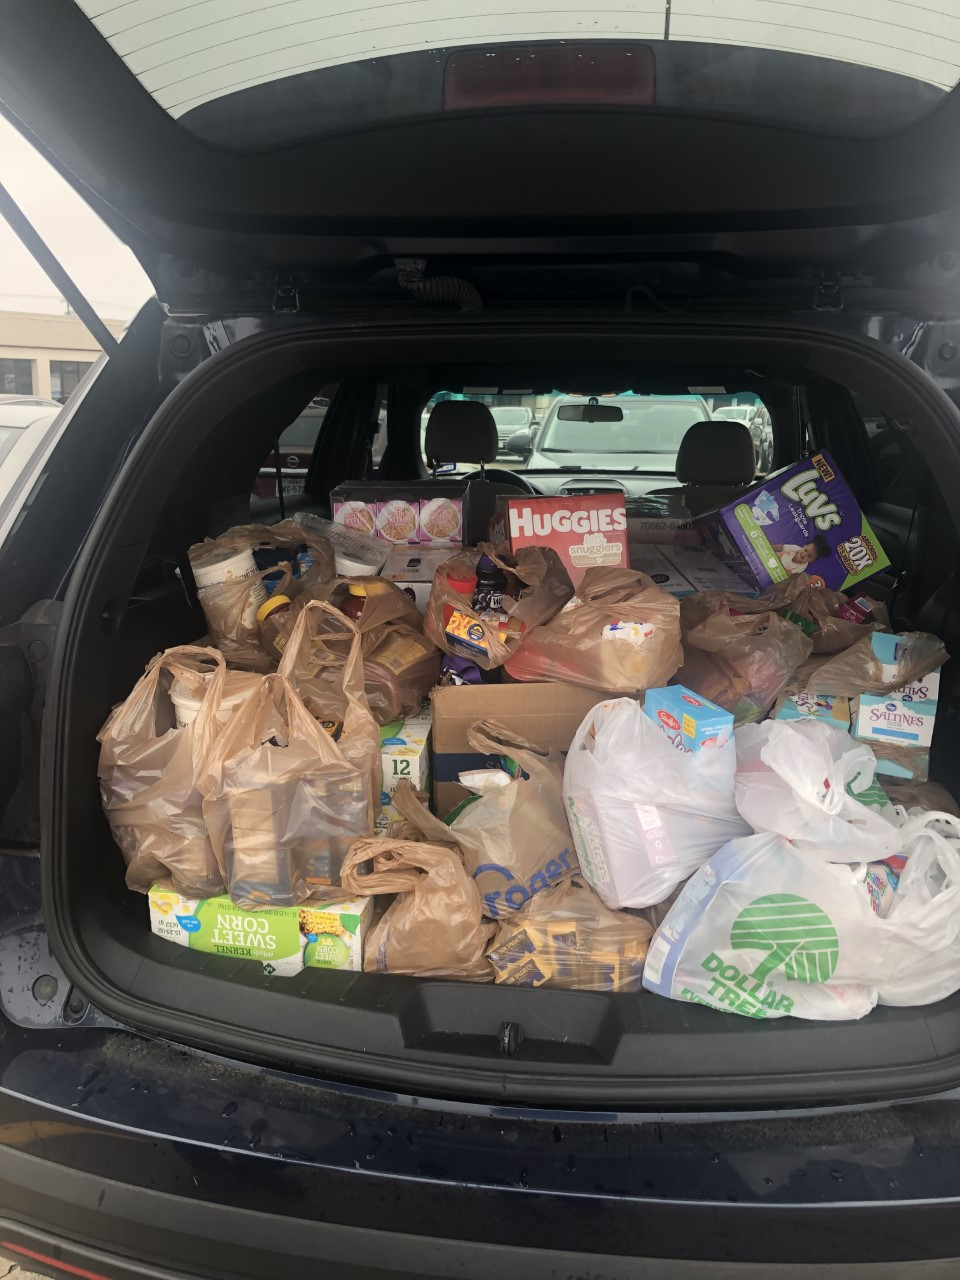 You-can-help-by-donating-non-perishables-to-those-in-need